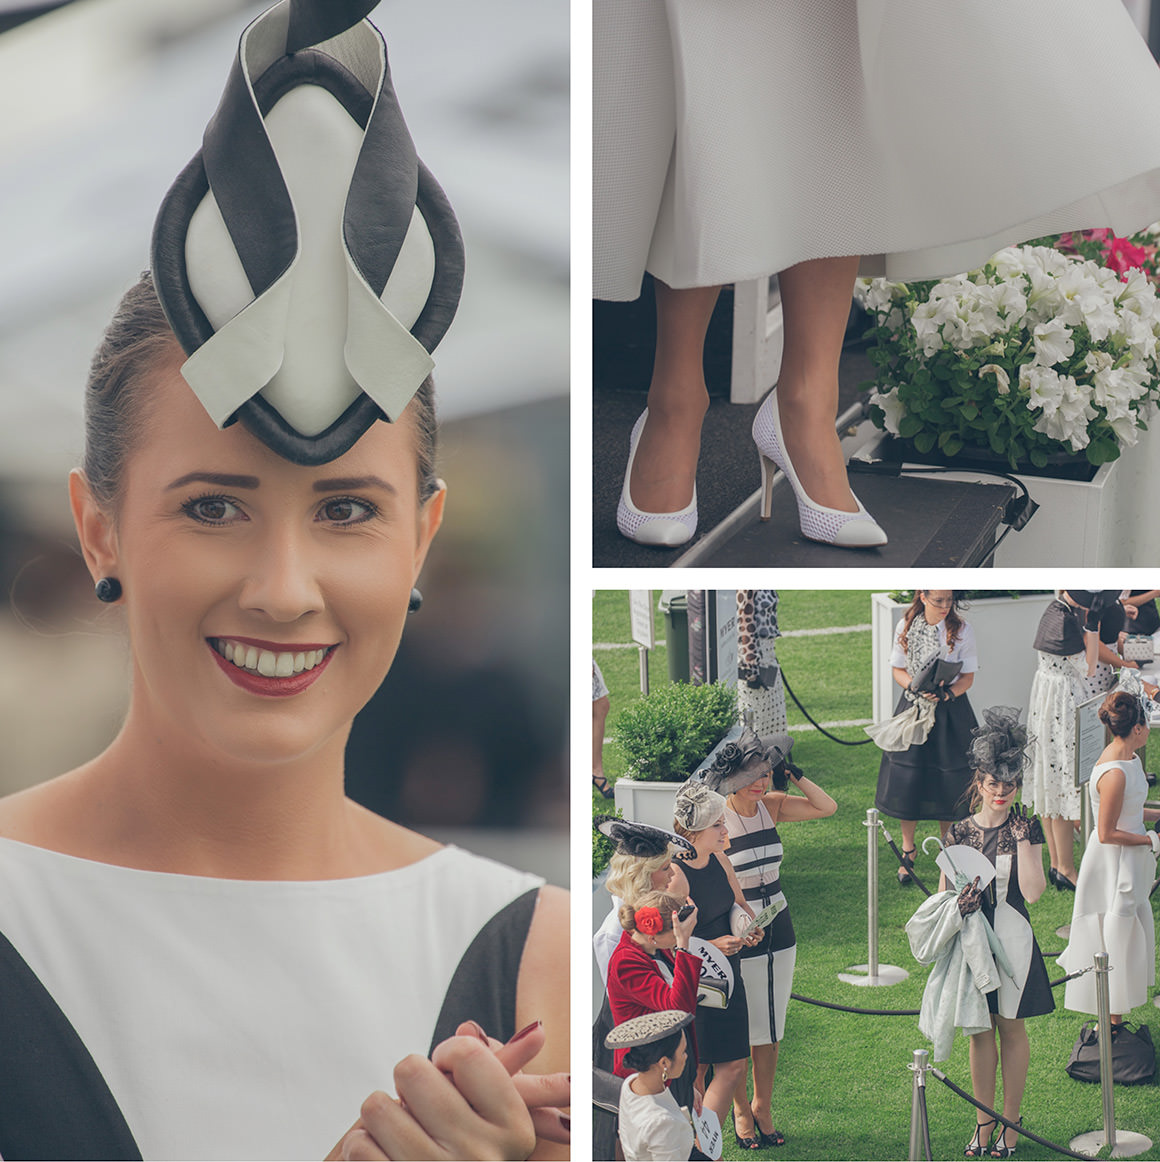 melbourne cup carnival 2014